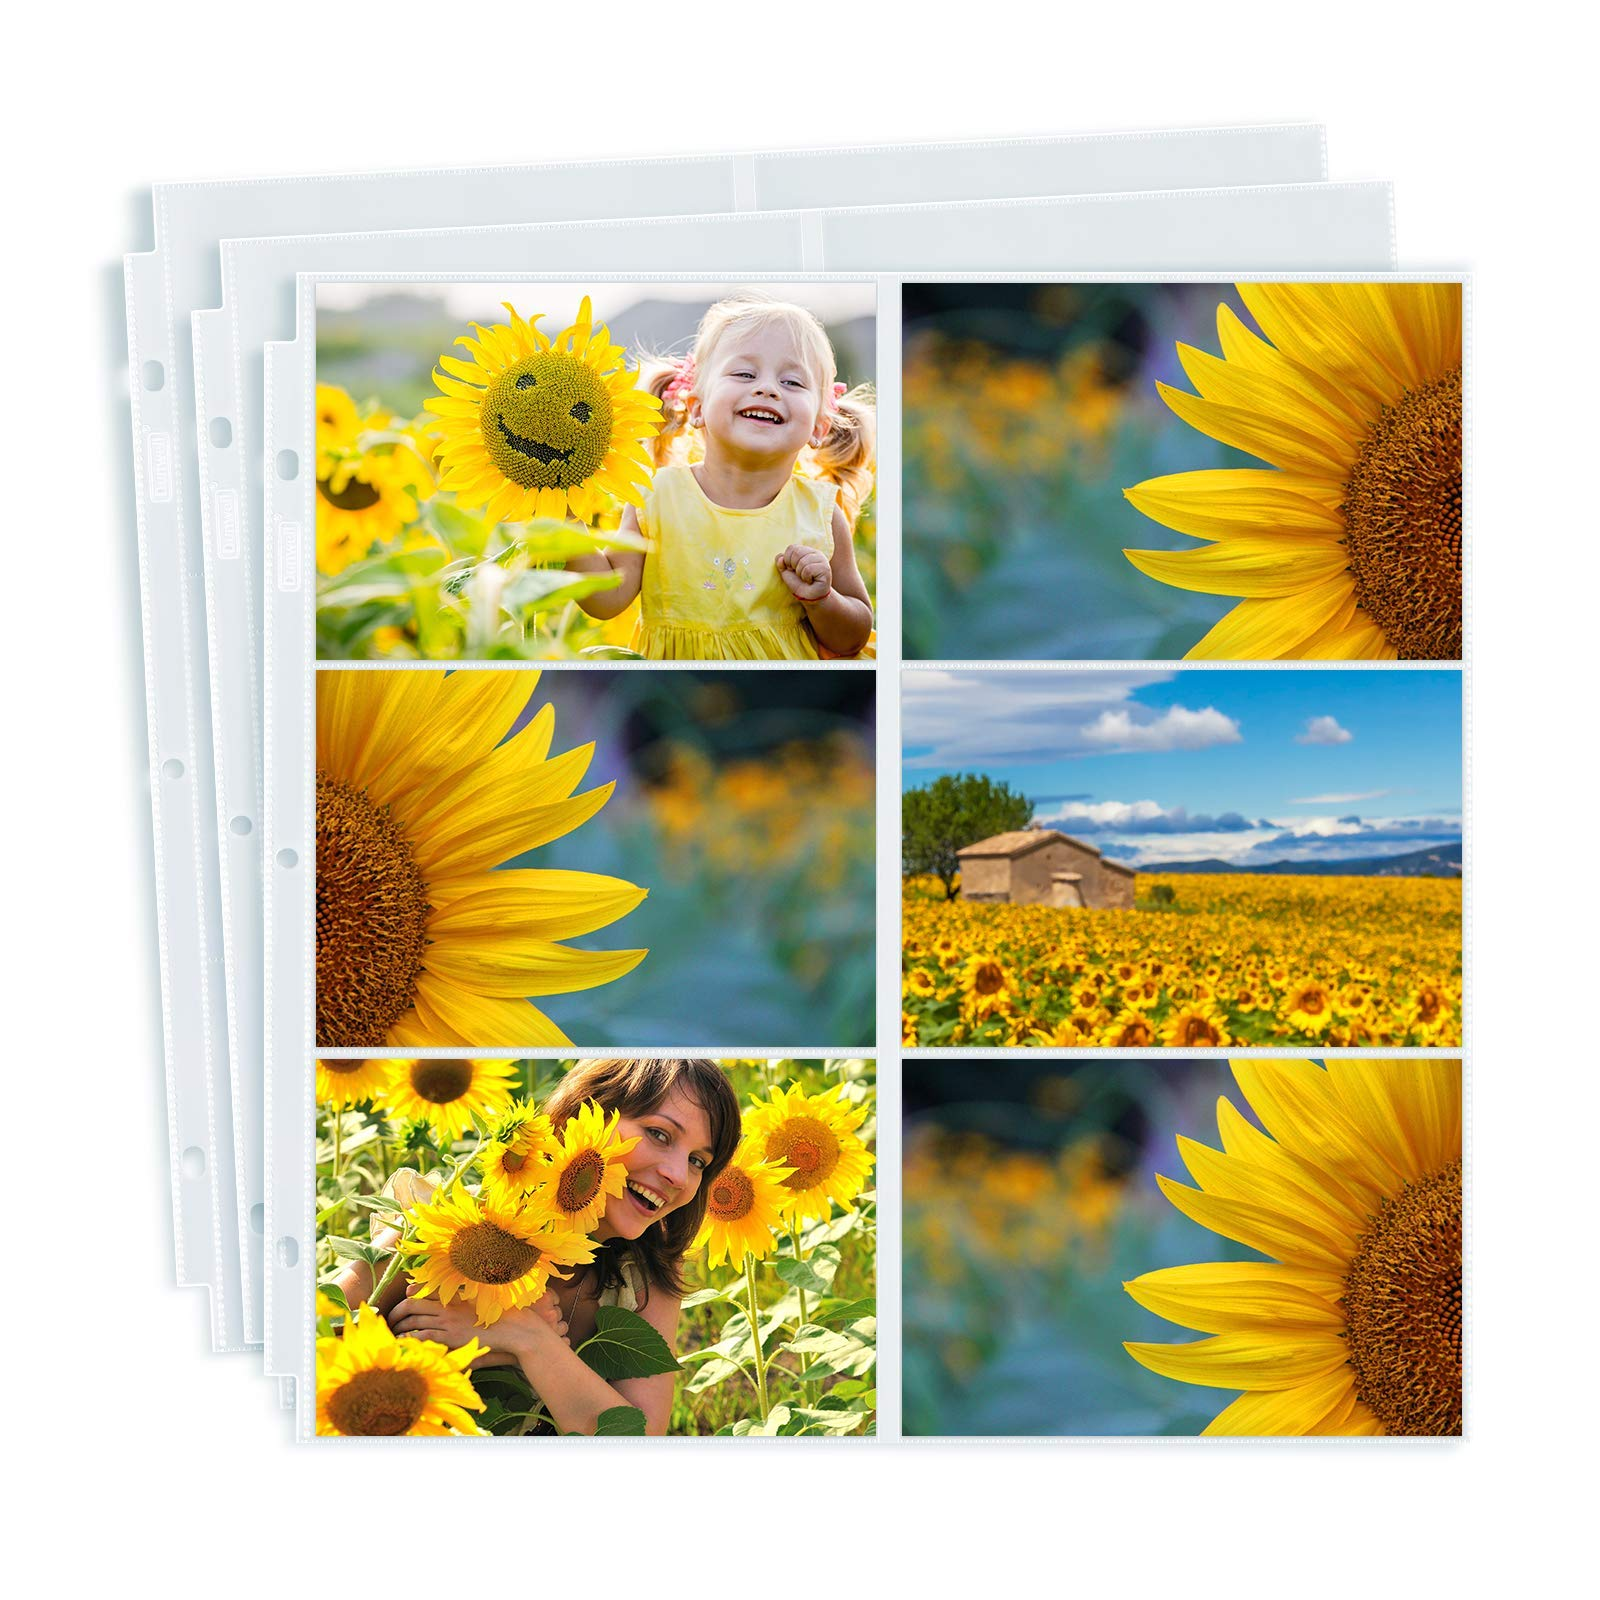 Dunwell Photo Album Refill Pages 12x12 - (4x6 Landscape, 50 Pack) Holds 600 4x6 Photos, 4x6 Photo Sleeves for 3 Ring Binder, Post Bound Scrapbook Album 12x12, Archival Quality Page Protectors 12x12